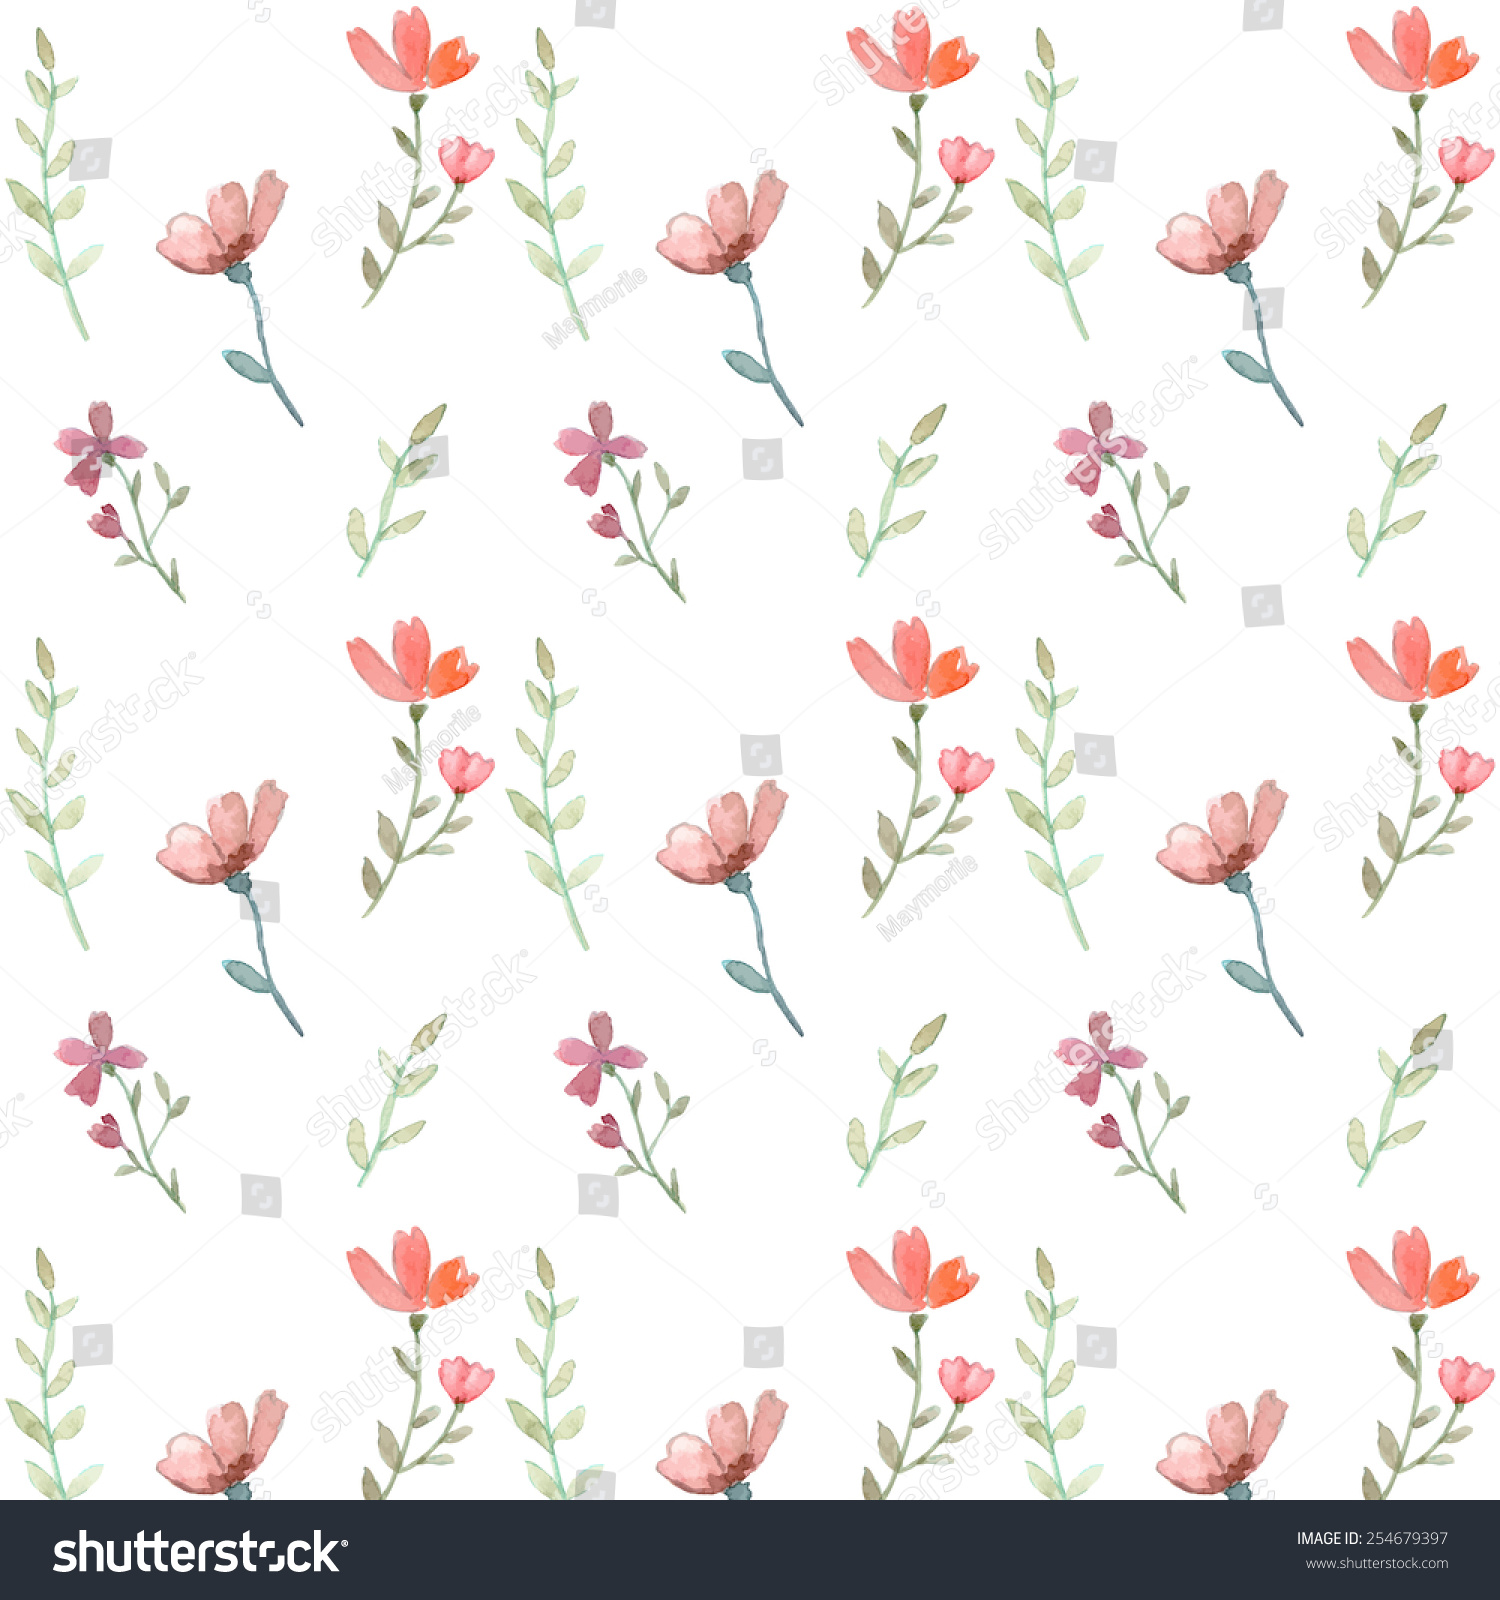 Seamless Flowers And Leaves Wallpaper Pattern Vector On Plain Background